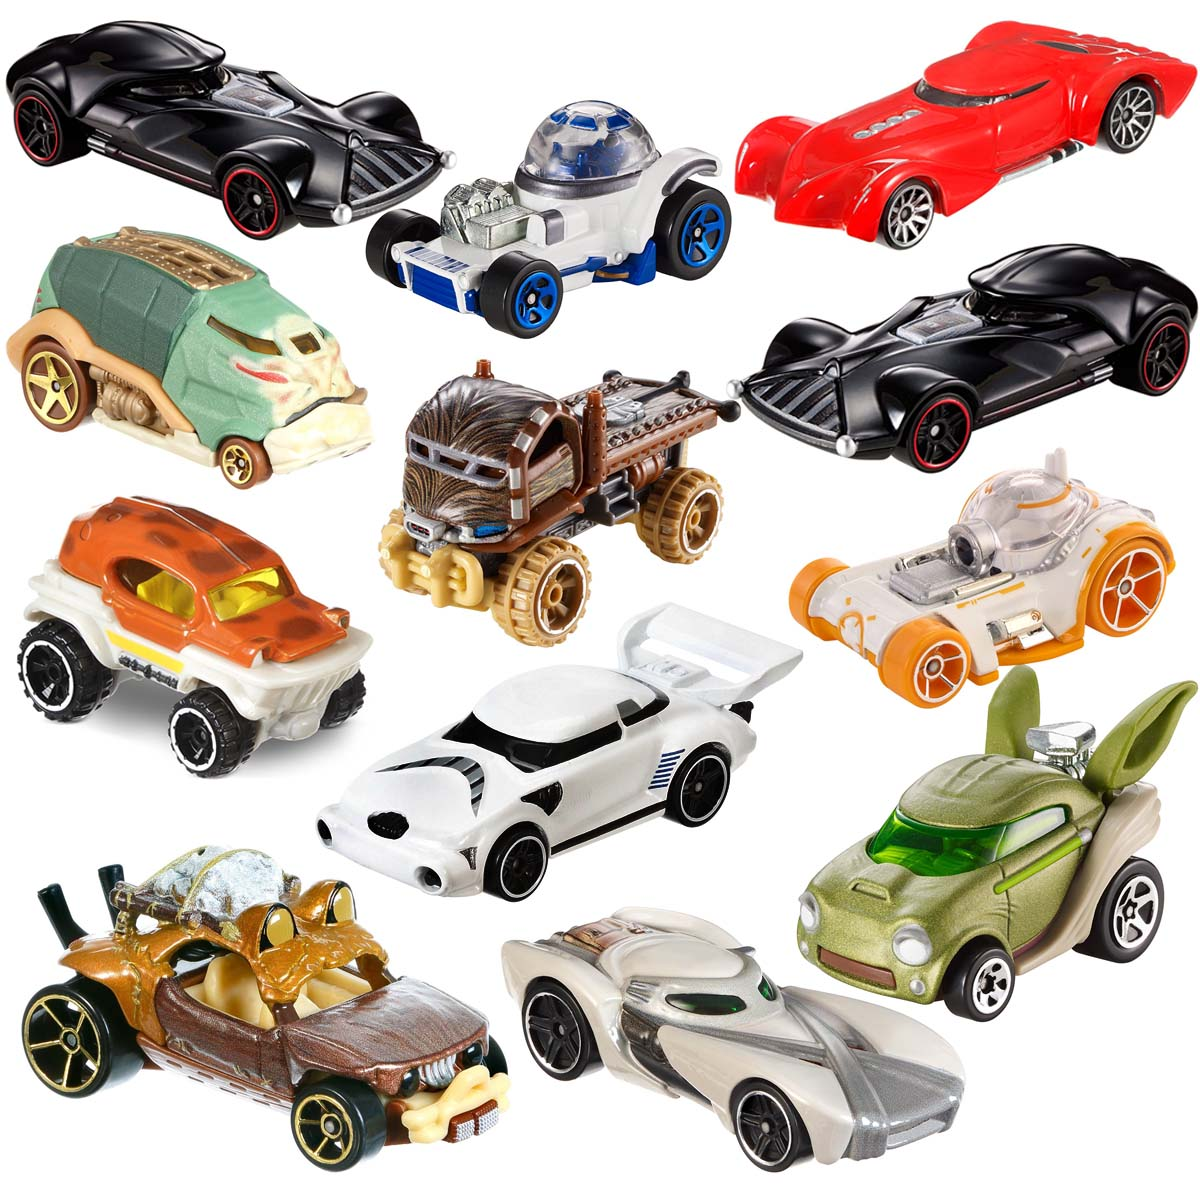 Hot Wheels (Set Of 12) Die Cast Star Wars Toys Characters Cars Action Figure Toy